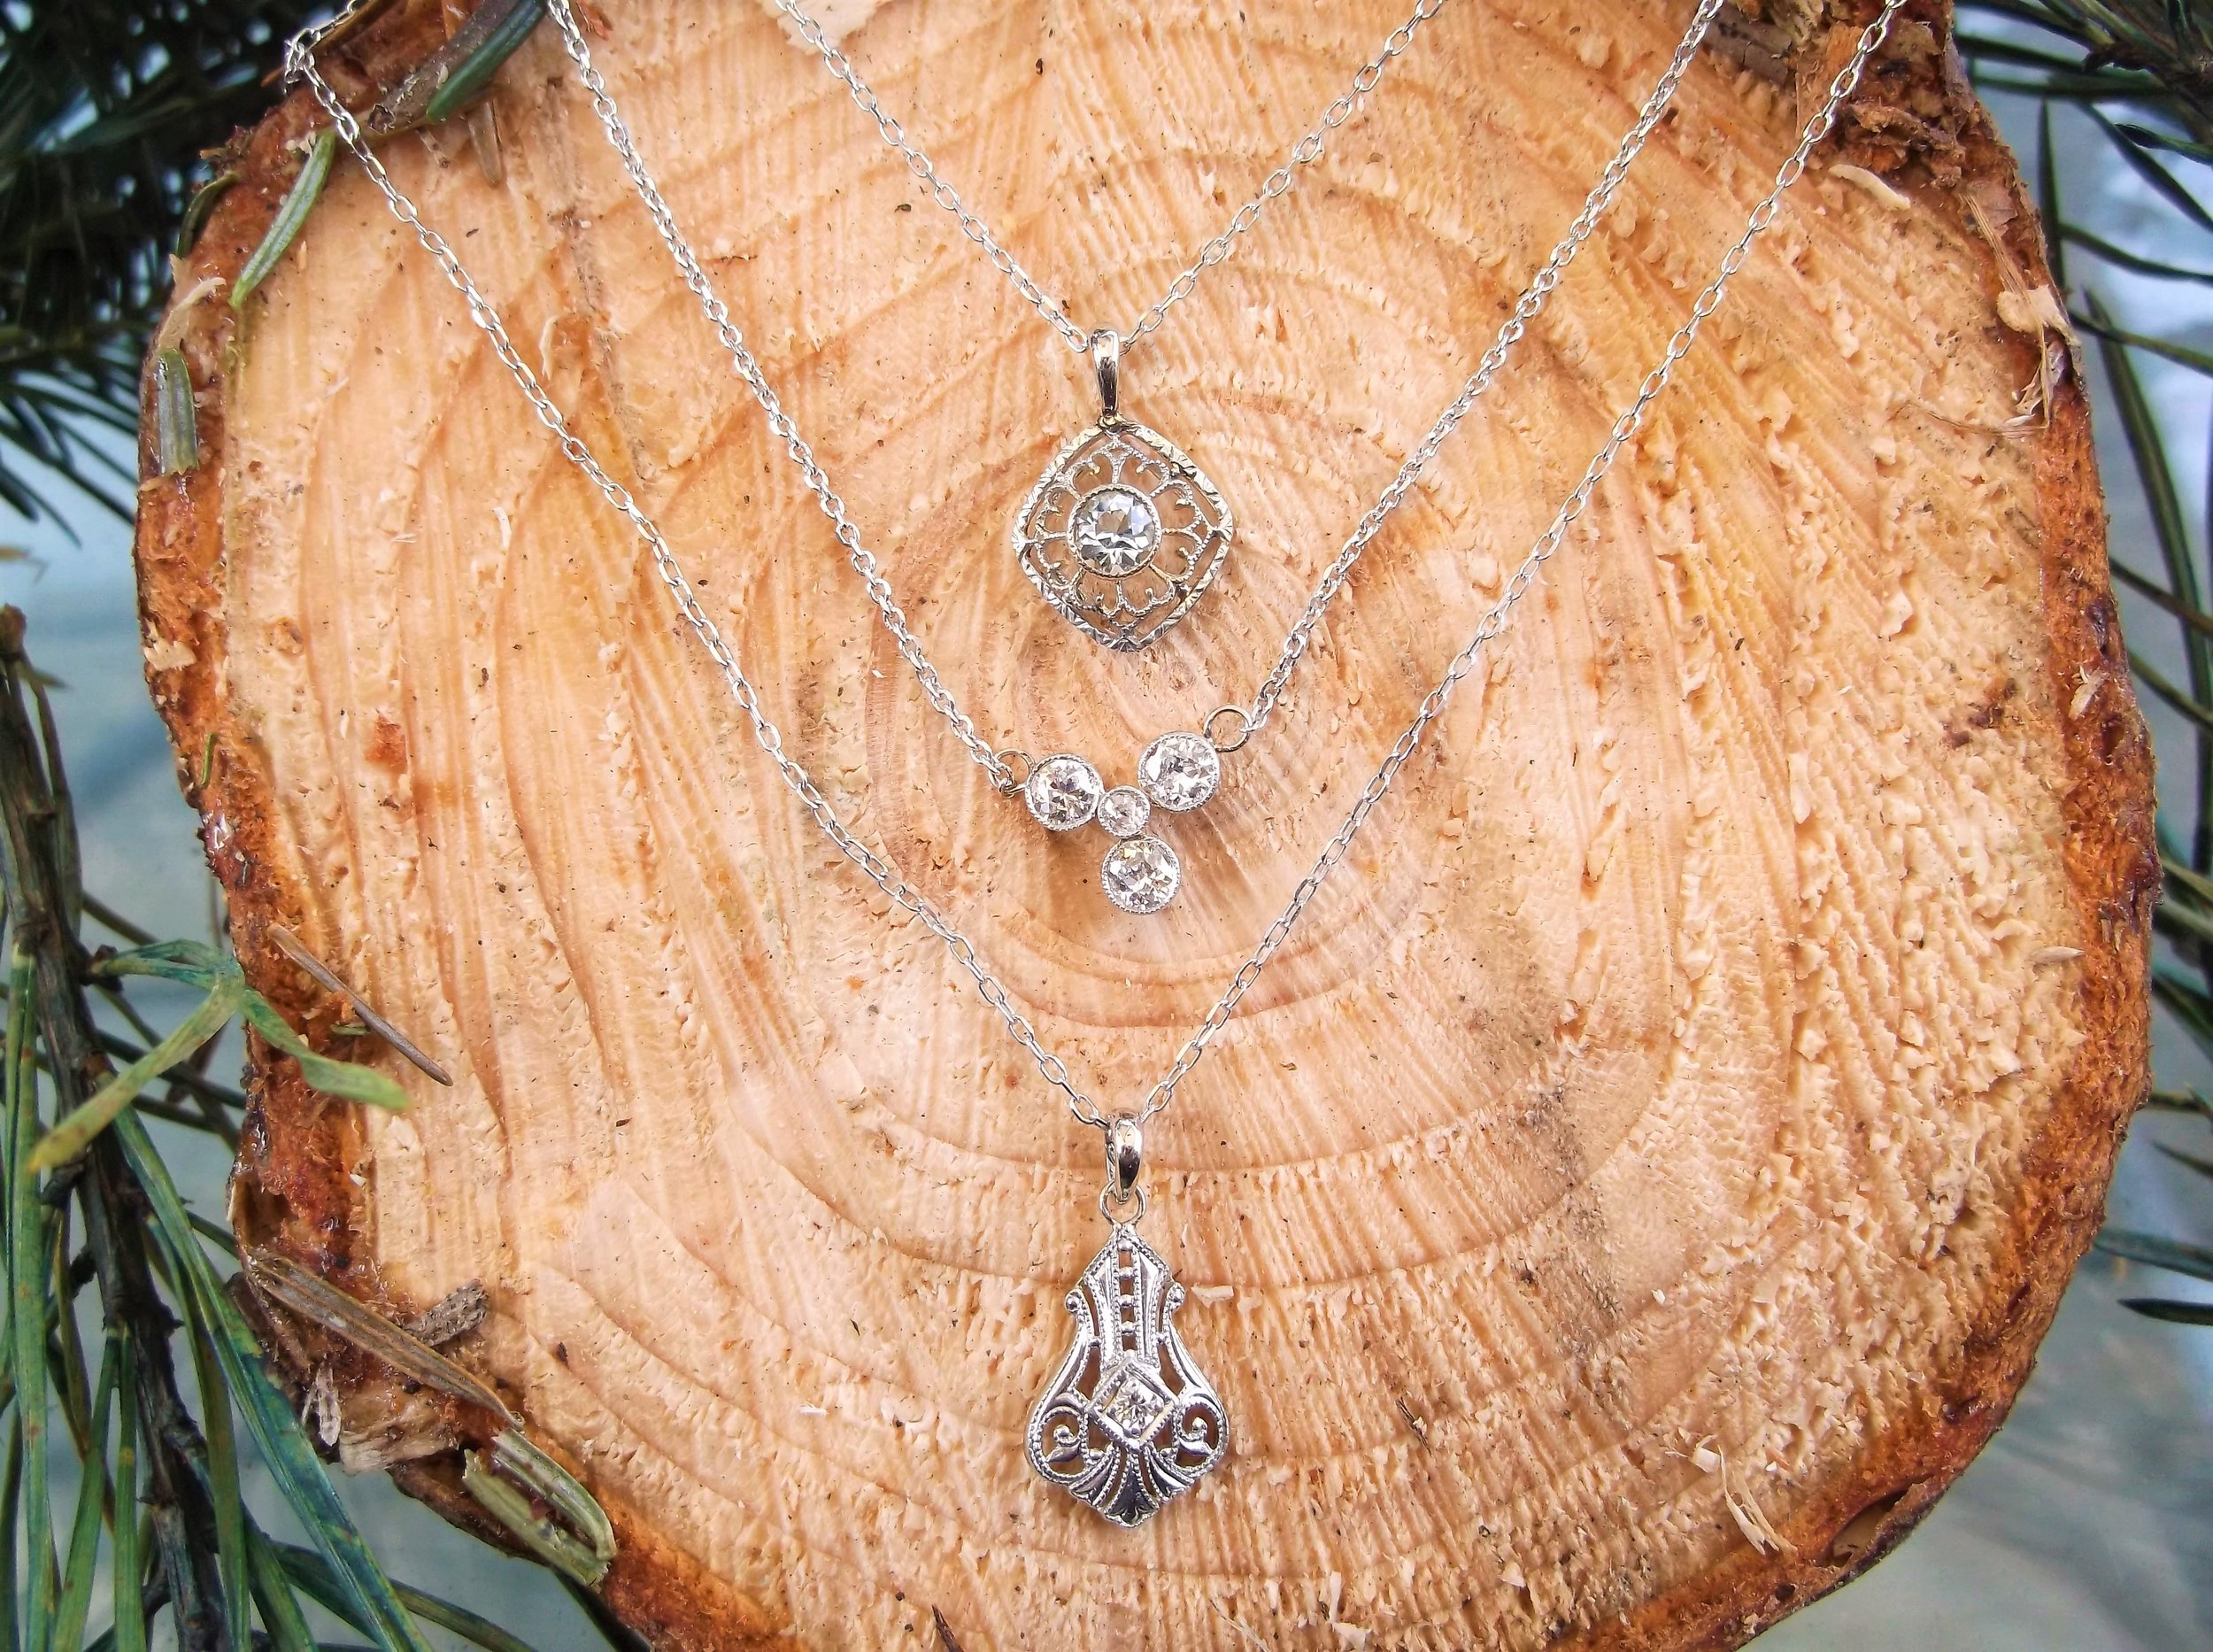 Top: SOLD - Art Deco aquamarine and filigree pendant set in white gold   Middle:  SOLD - Edwardian era, Old European cut diamond pendant set in platinum topped gold with 0.55 carats total weight in diamonds   Bottom: SOLD - 1920's filigree and diamond pendant in white gold